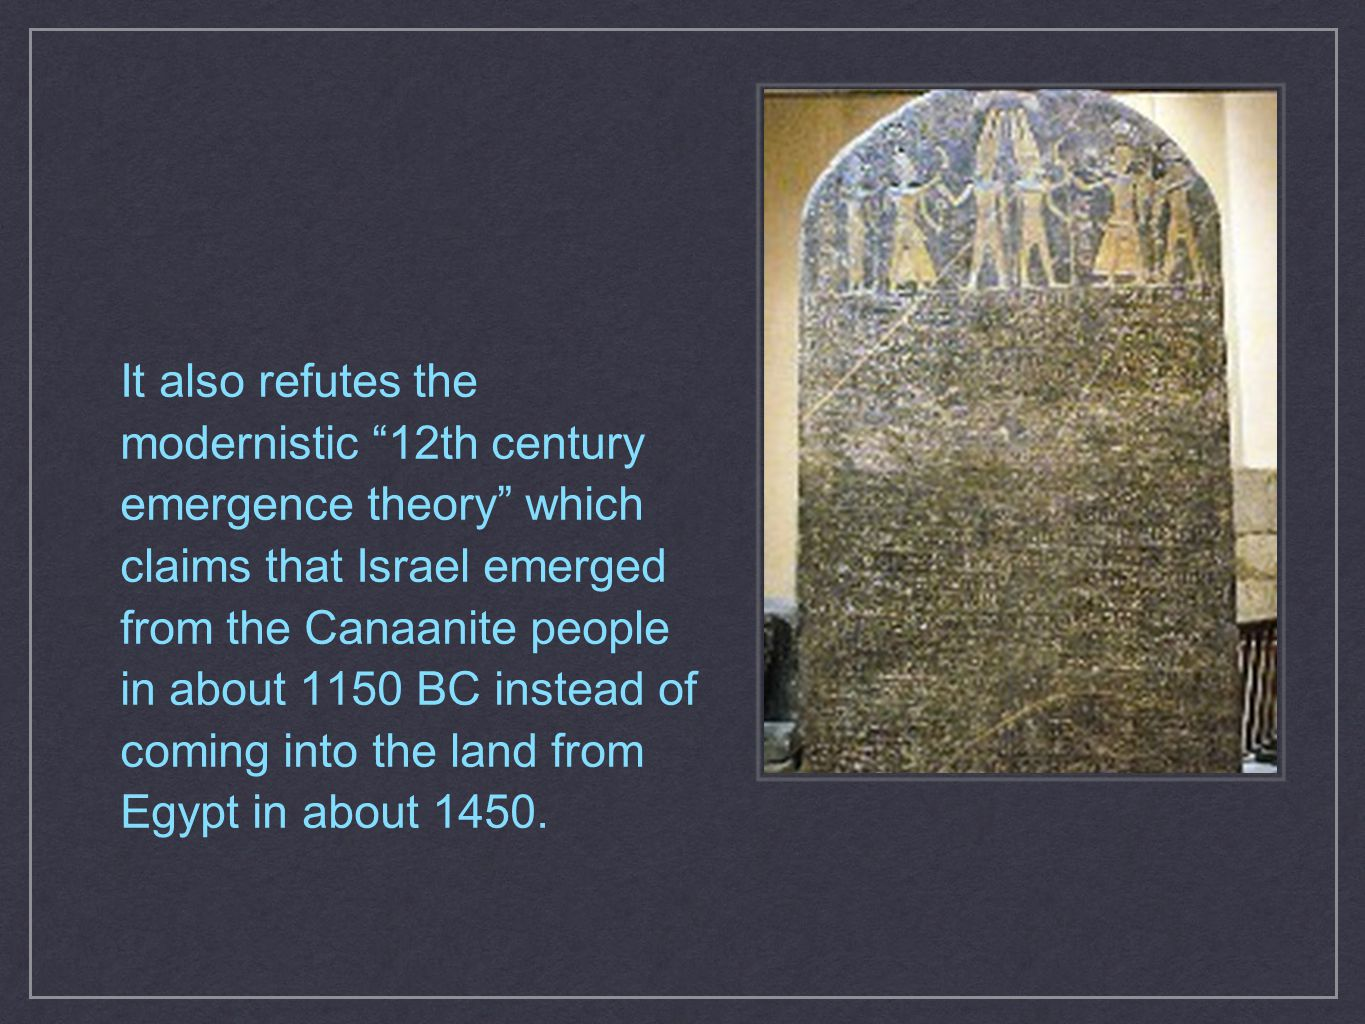 It also refutes the modernistic 12th century emergence theory which claims that Israel emerged from the Canaanite people in about 1150 BC instead of coming into the land from Egypt in about 1450.